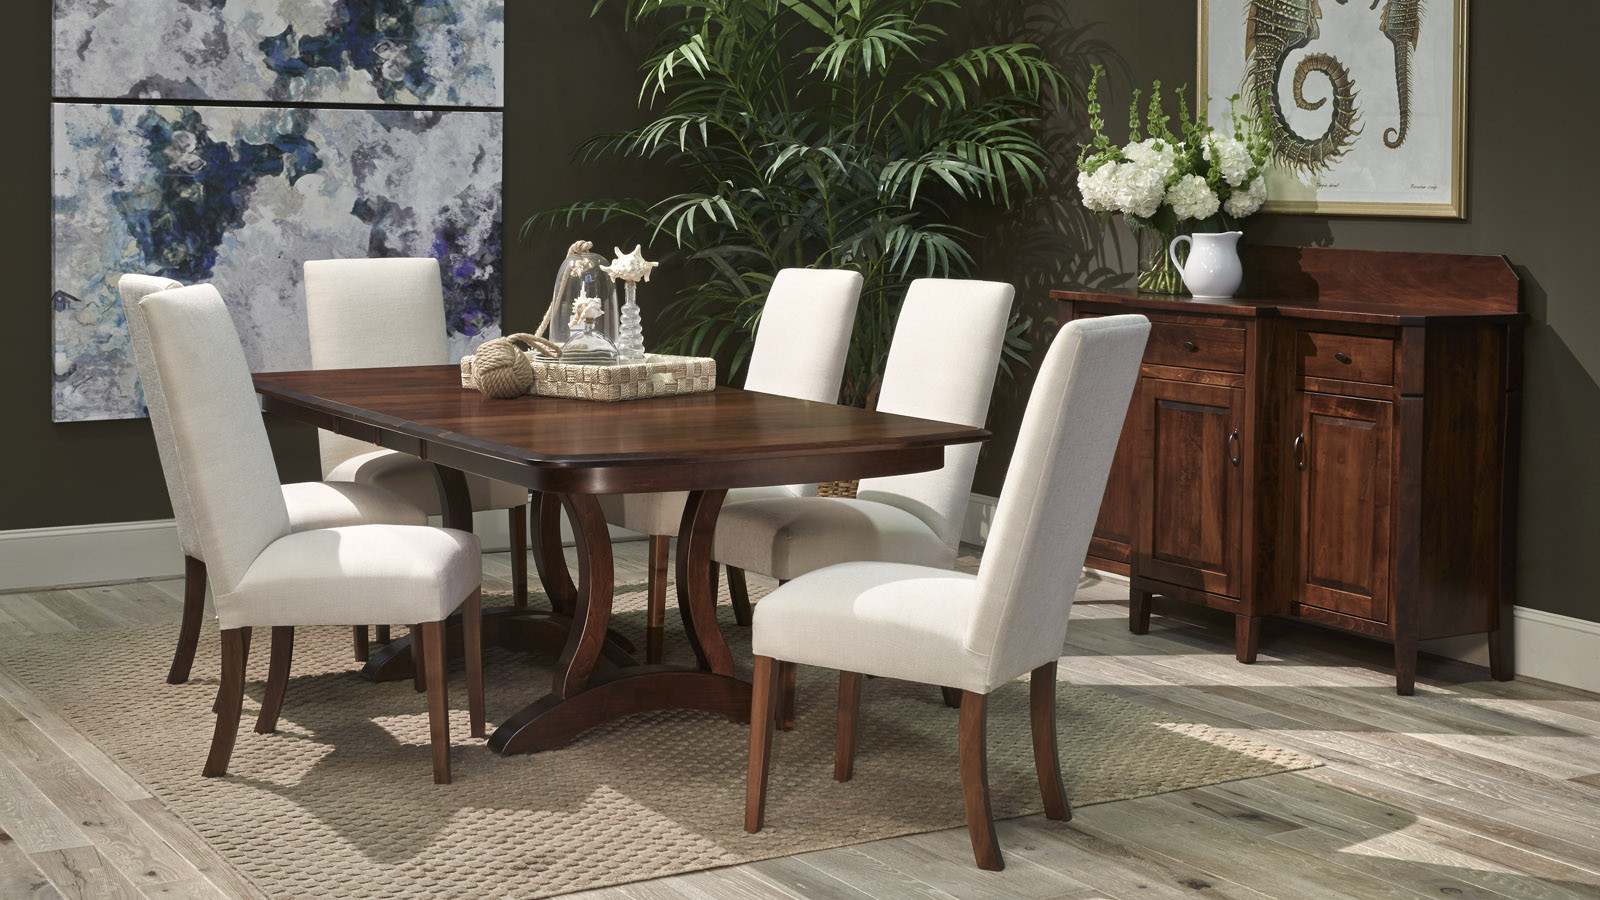 Best ideas about Dining Room Furniture . Save or Pin Choose the Right Quality Dining Room Furniture Set and Now.